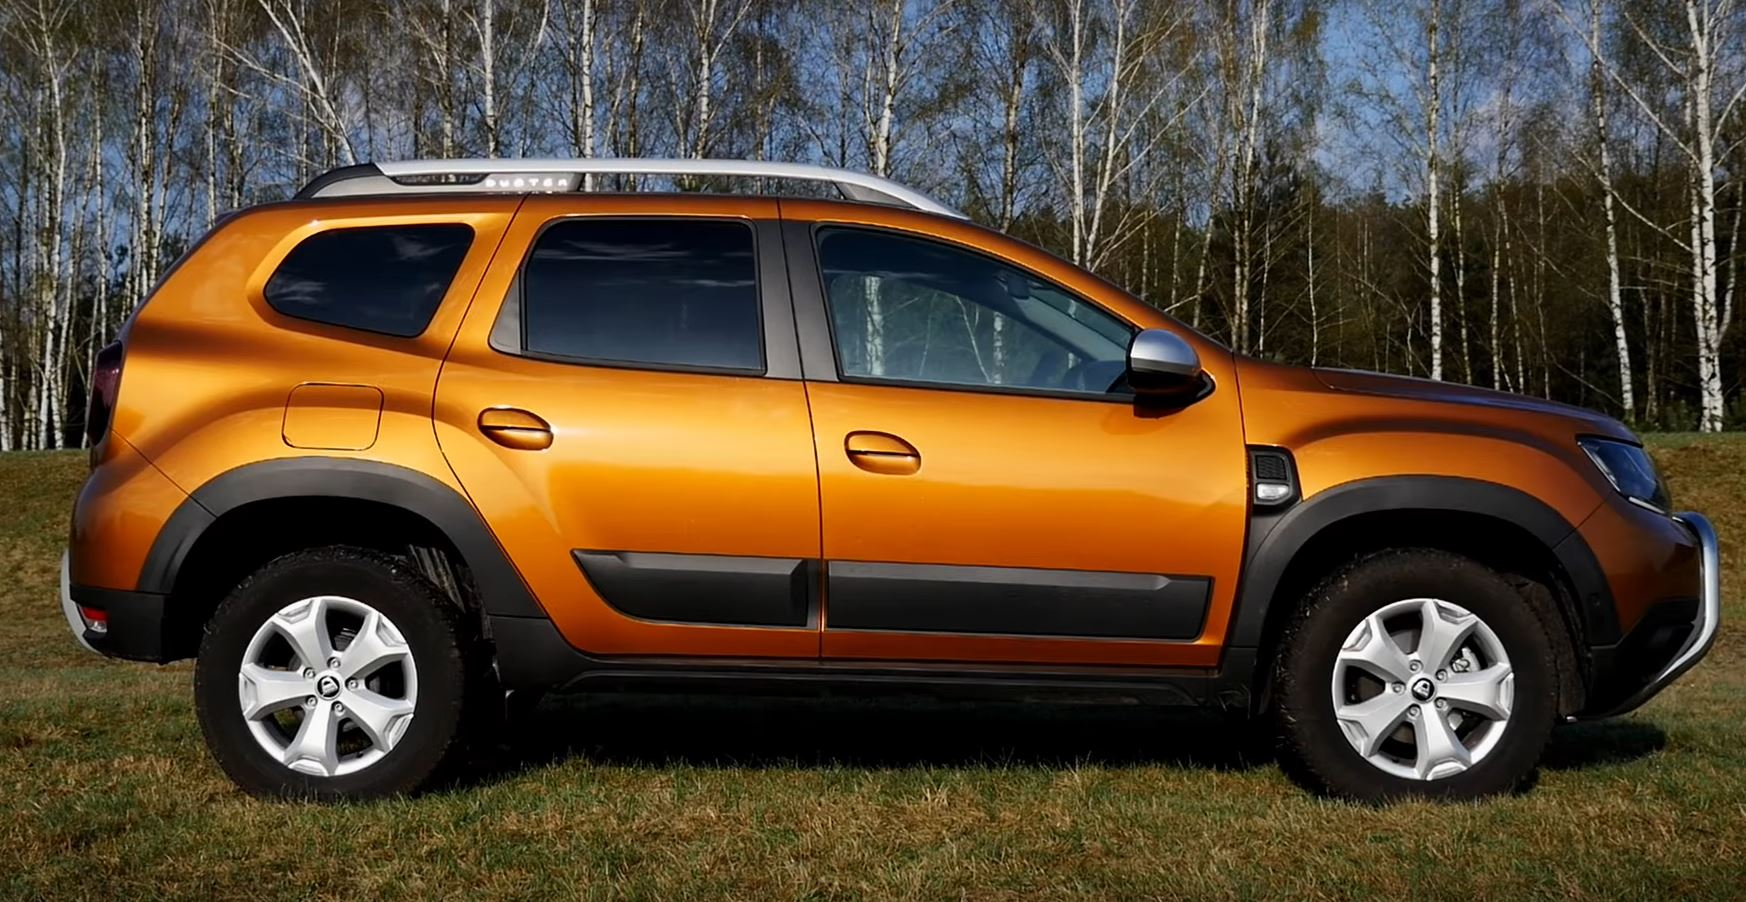 2018 dacia duster review reveals flaws are still plentiful autoevolution. Black Bedroom Furniture Sets. Home Design Ideas